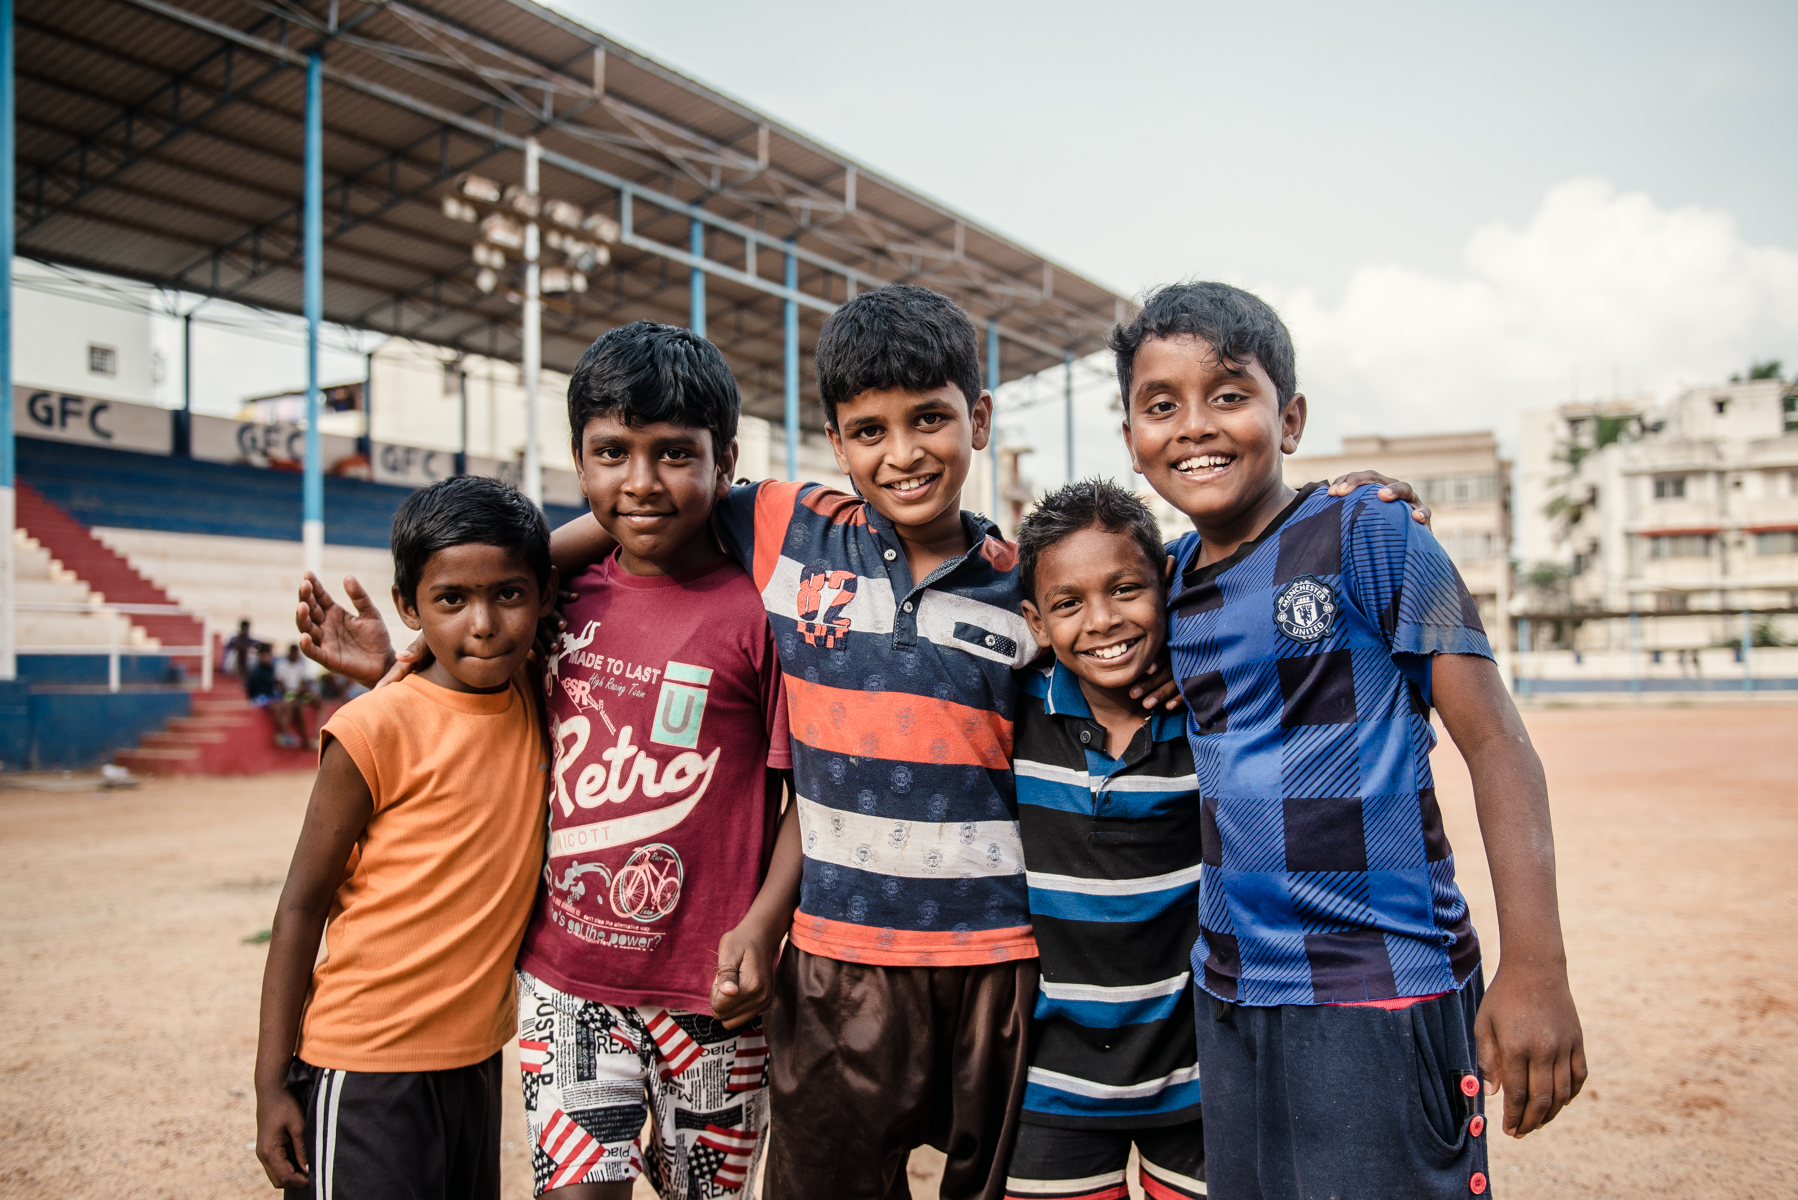 PL_India_Day1_Alex_Wallace_Photography_073.jpg